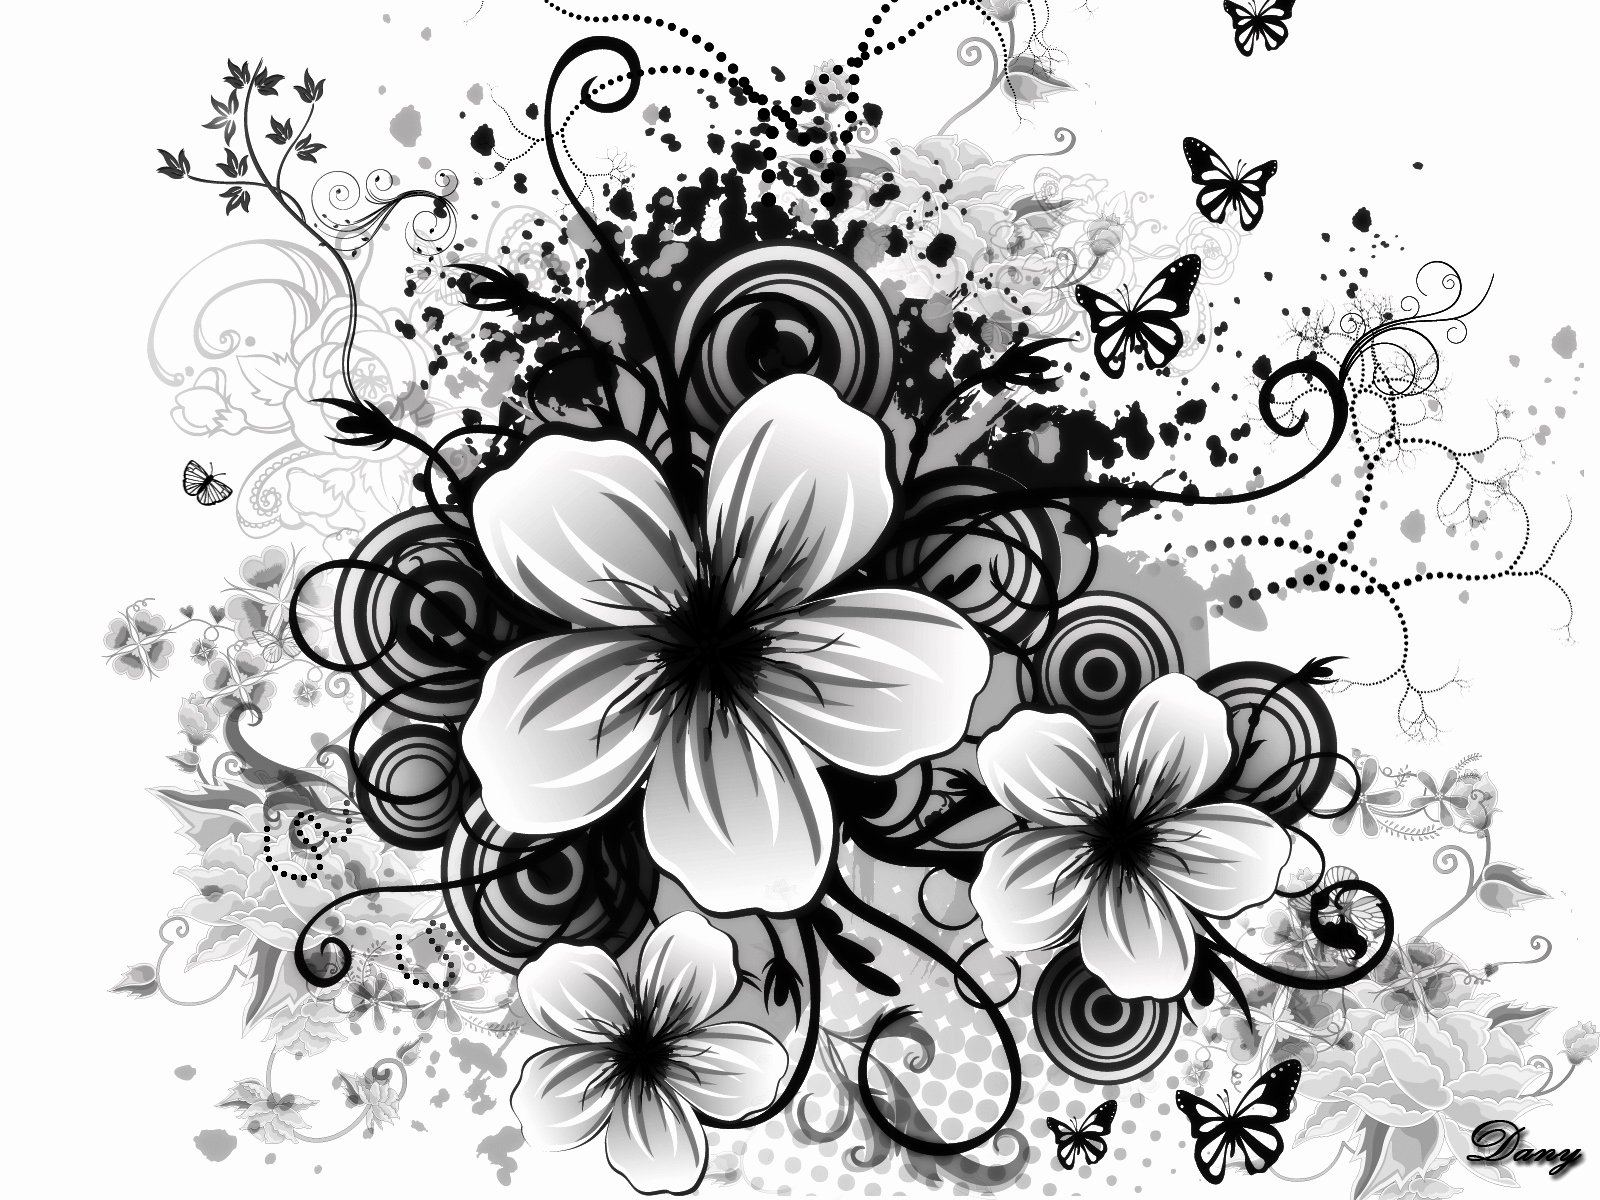 Black and White Flower Drawings Beautiful Black and White Flowers Wallpapers Hd